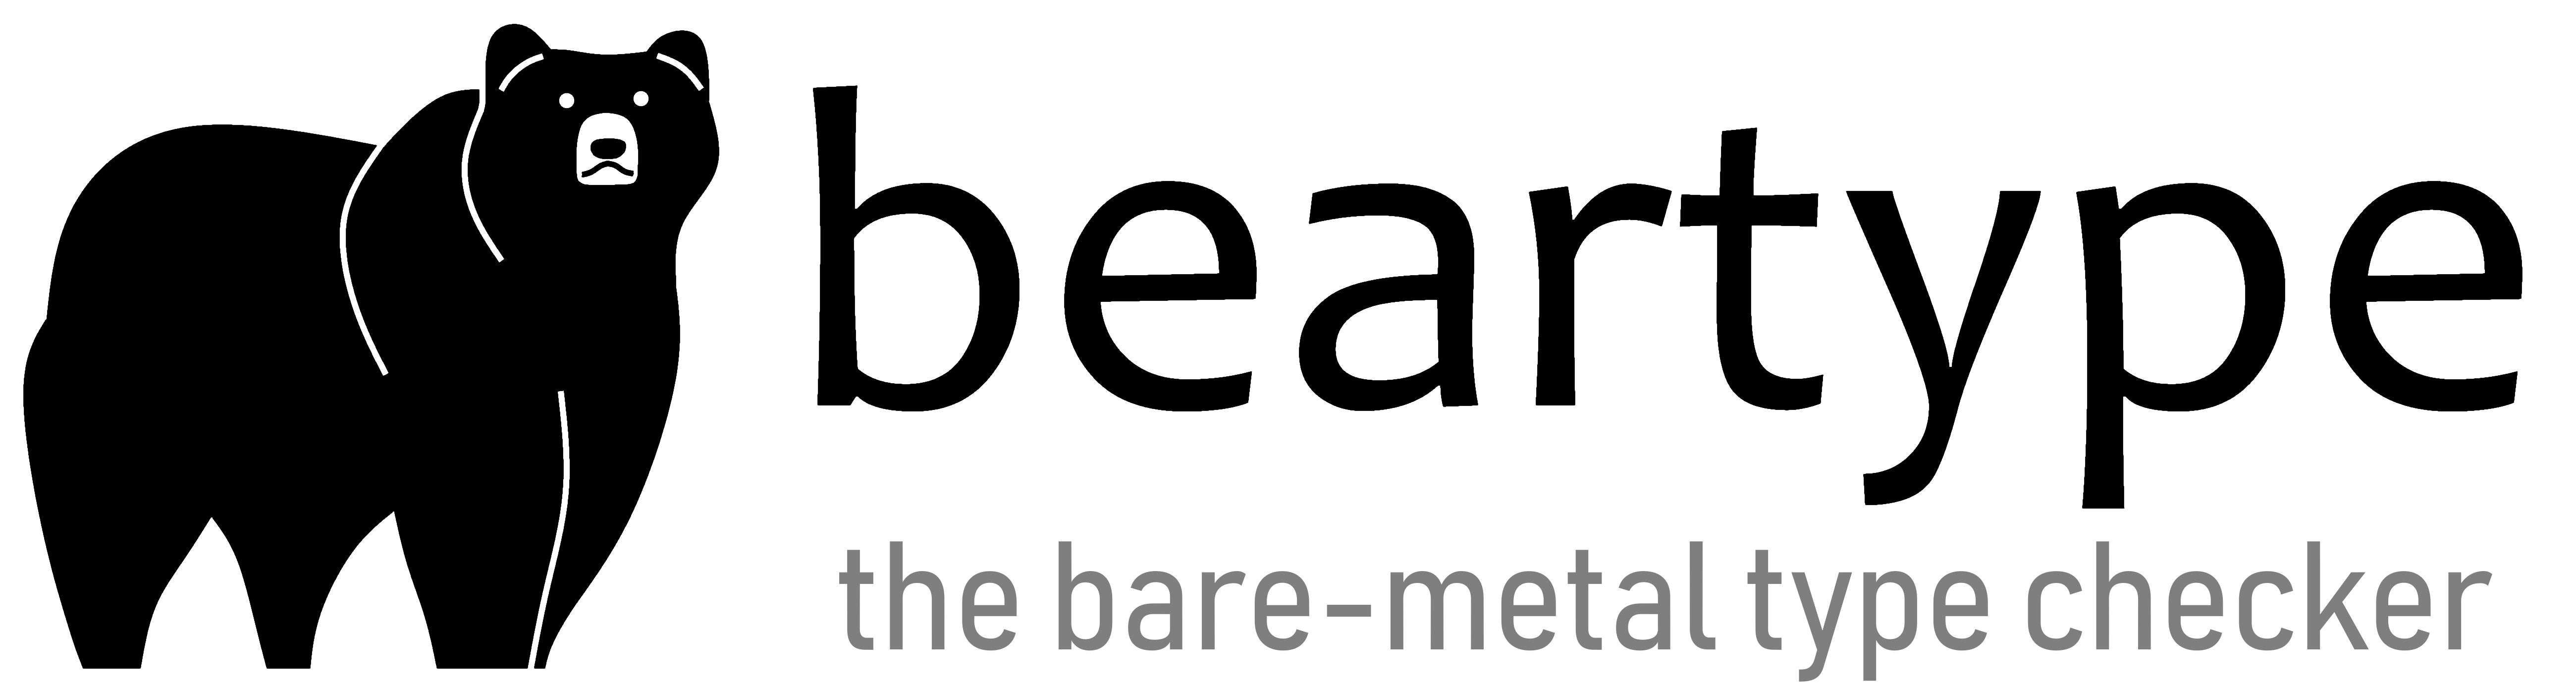 beartype —[ the bare-metal type checker ]—